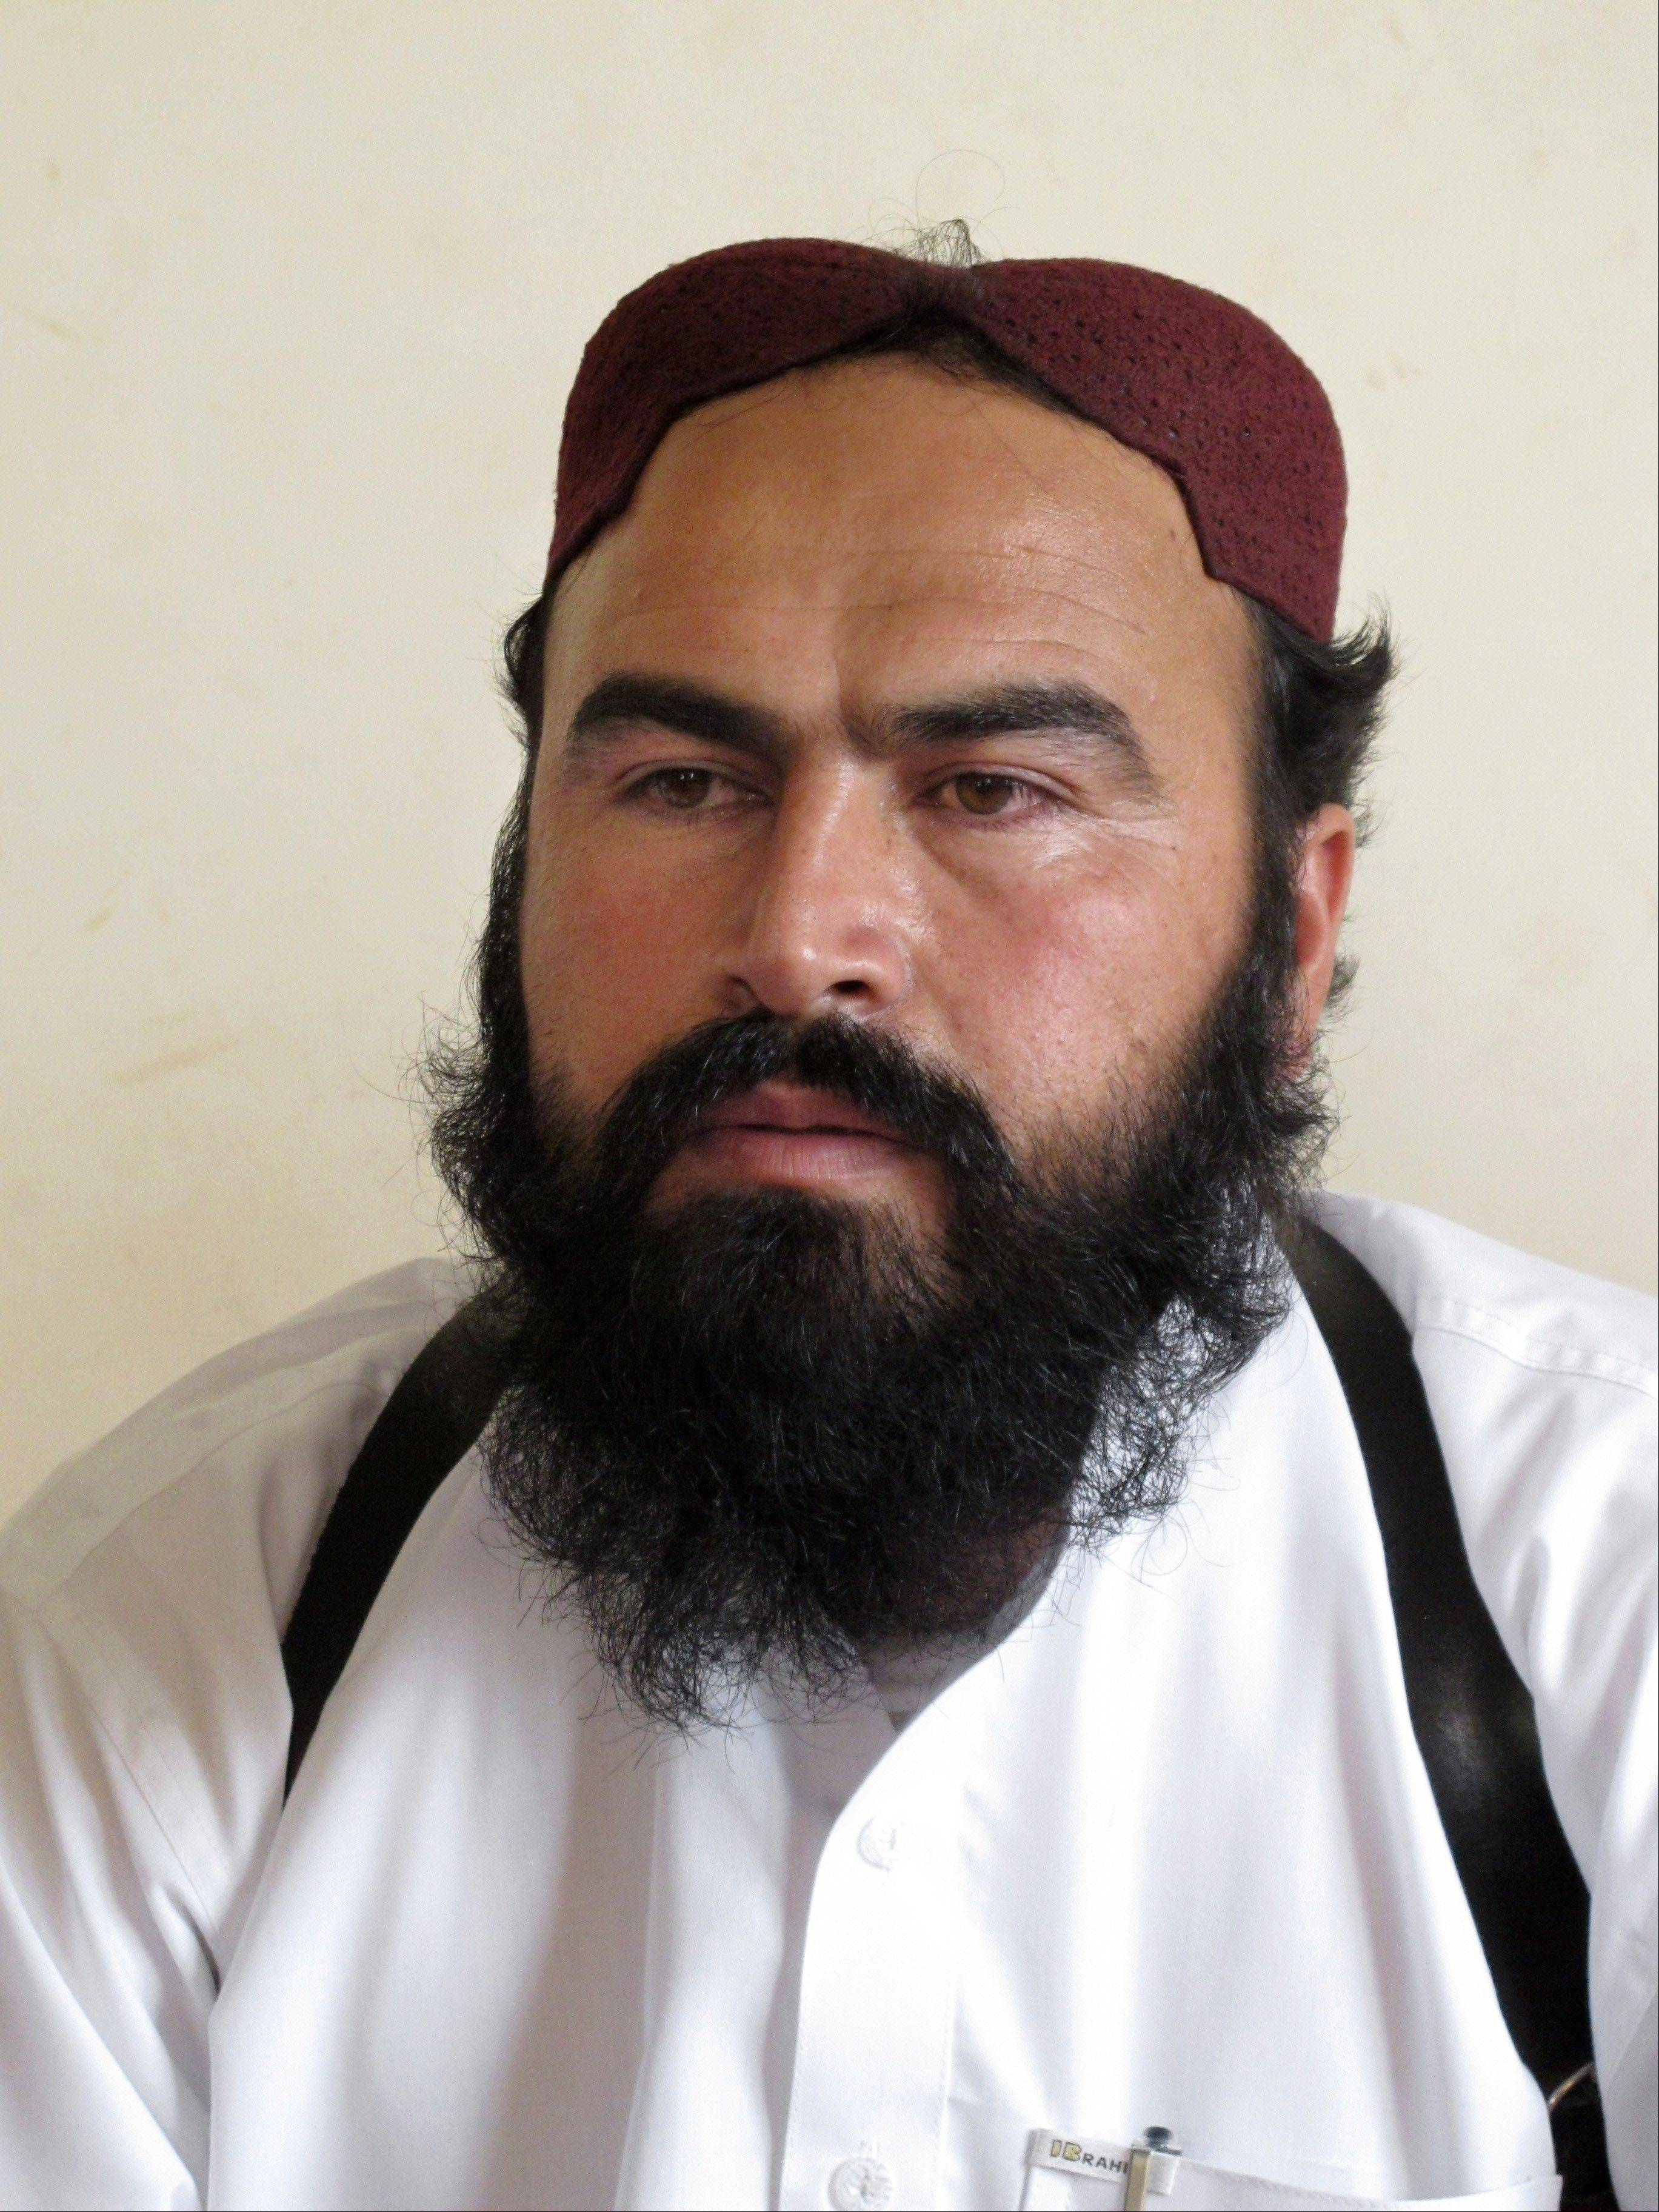 Pakistani intelligence officials say a U.S. drone strike has killed Taliban No. 2 commander Waliur Rehman, commander of the Pakistani Taliban. The militant group denies he is dead.